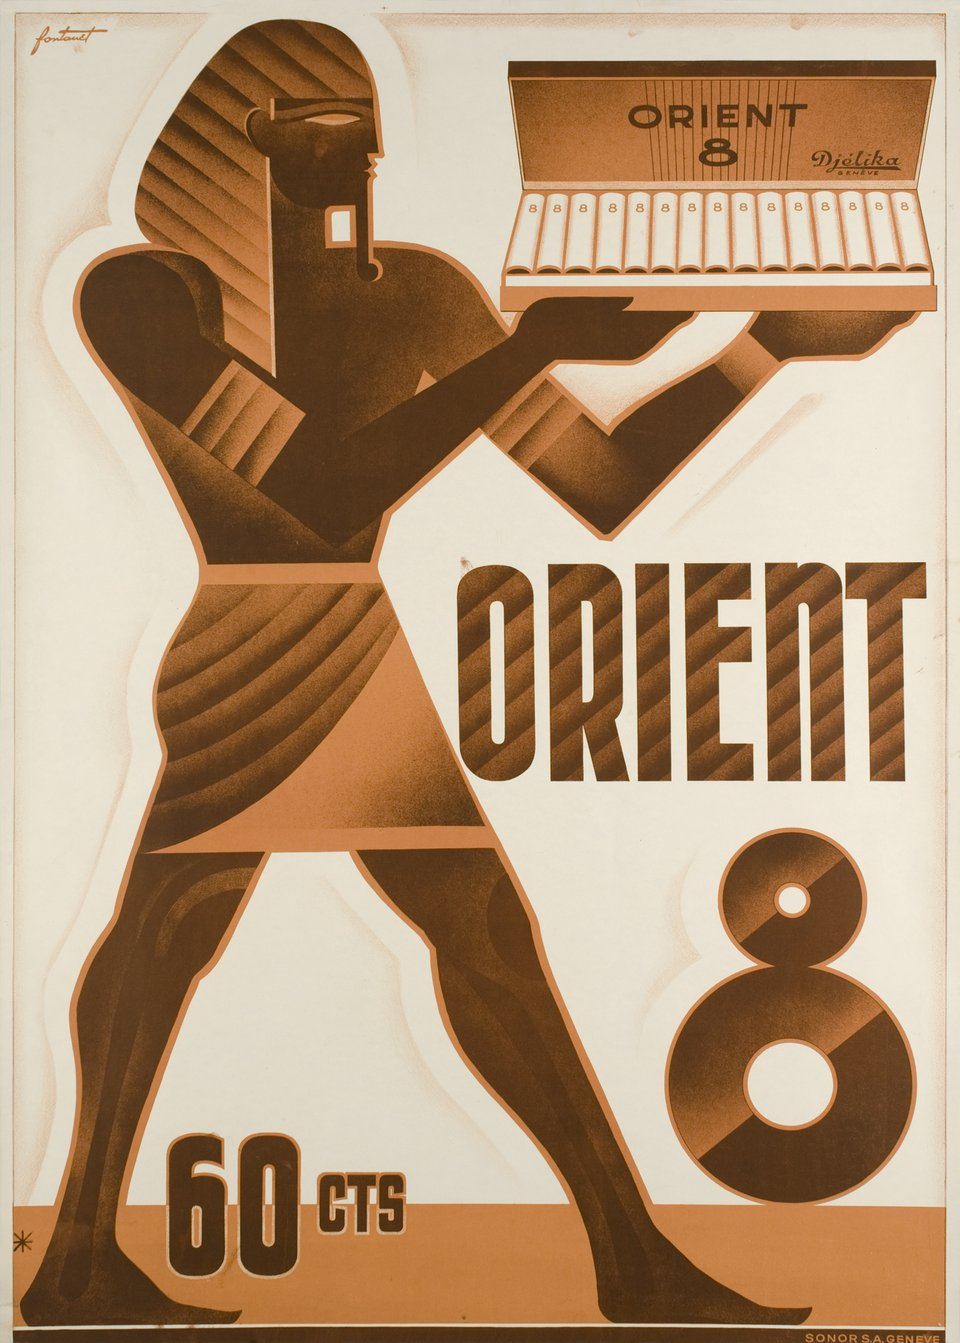 Orient 8 - 60 cts – Vintage poster – Noel FONTANET – 1930